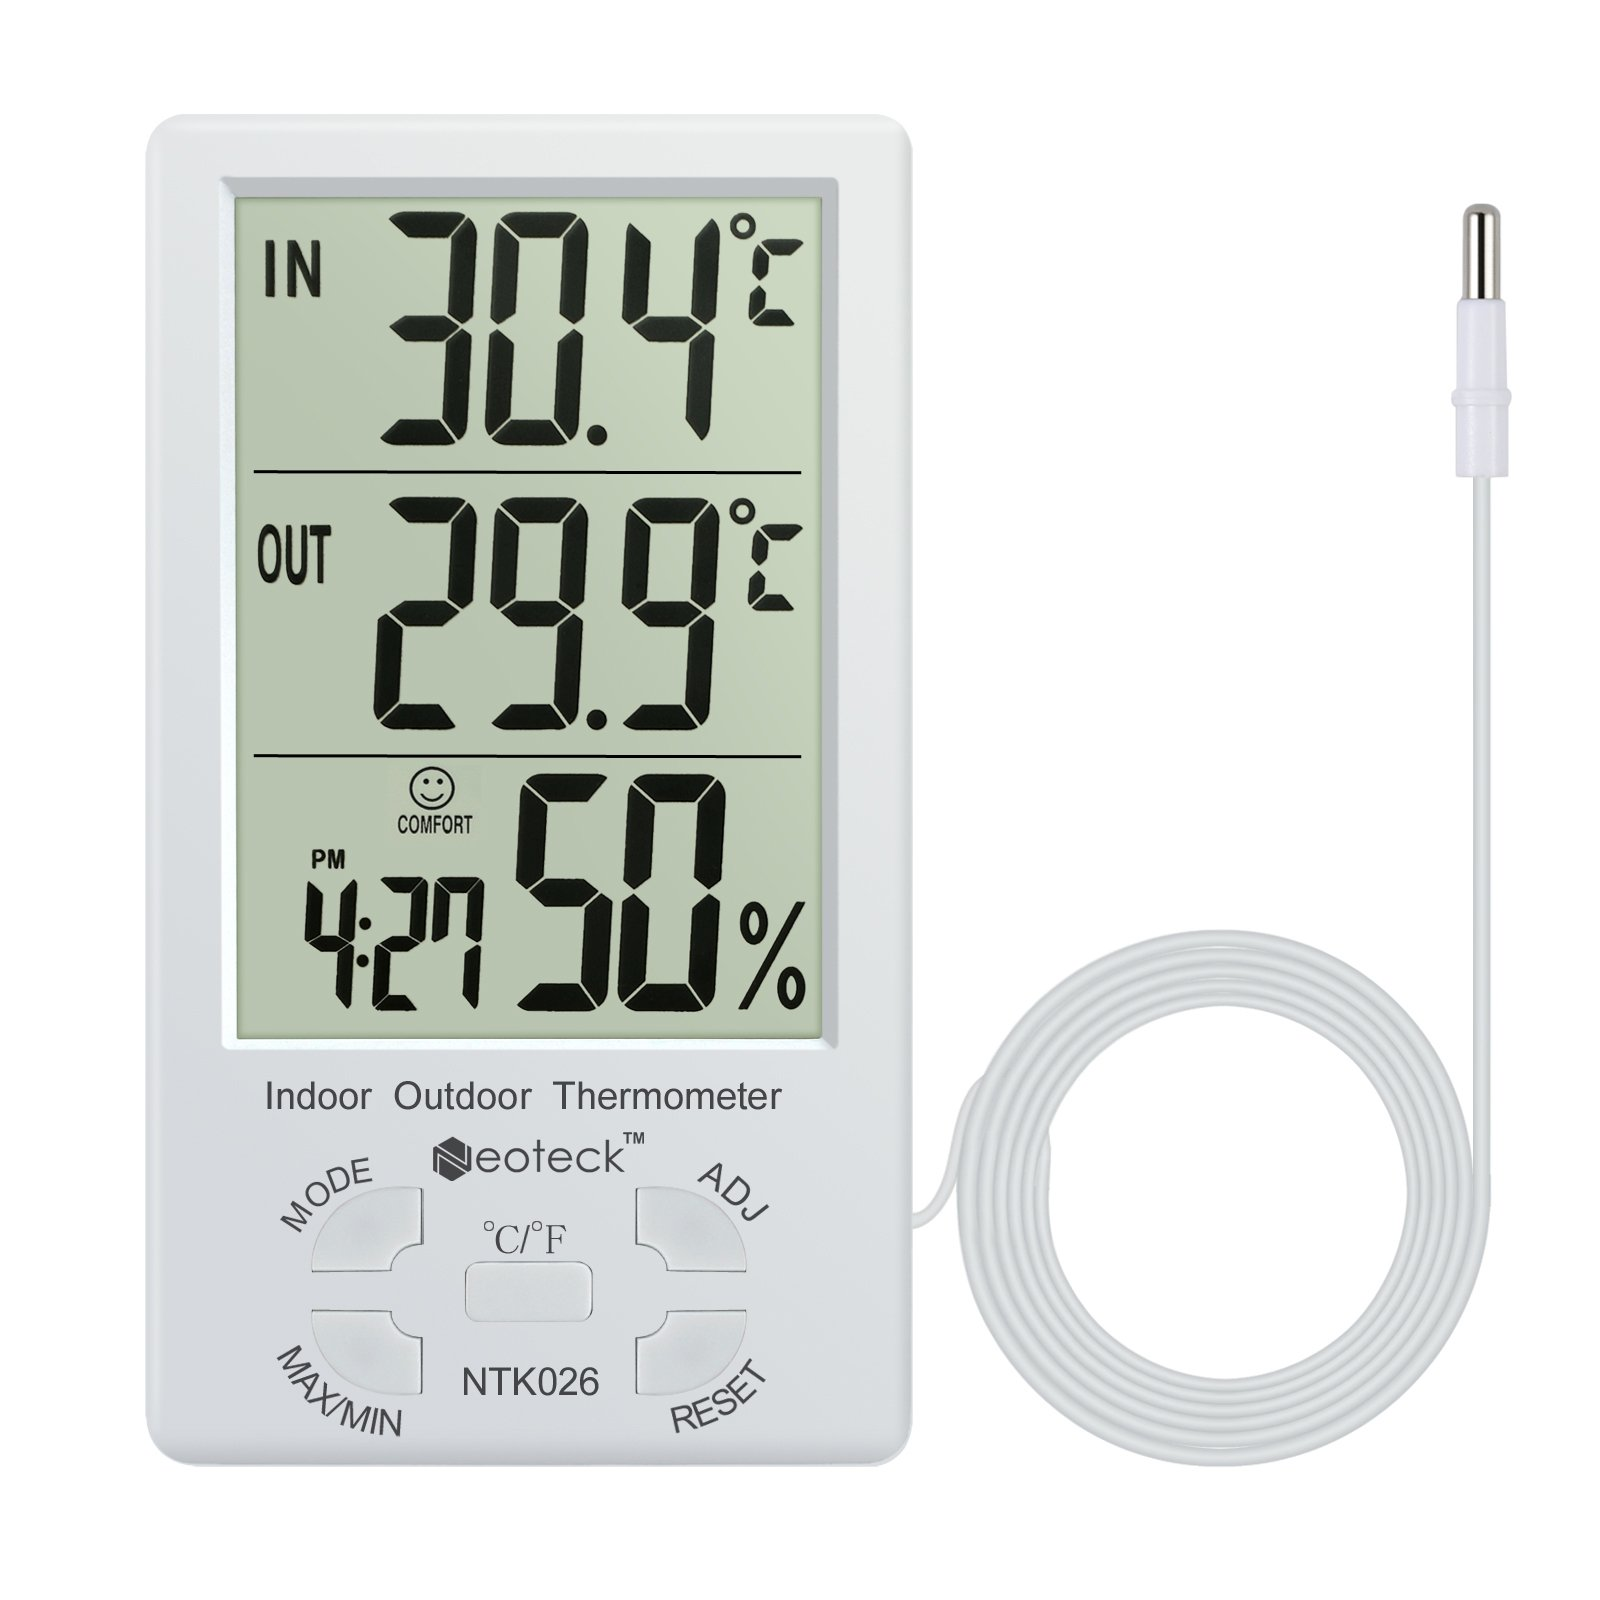 Digital Thermometer Neoteck 2 in 1 Hygrometer Temperature Meter Accuracy Temperature & Humidity with Large LCD Display 1.5m Sensor Wire Manage Air Condition for Indoor Outdoor Use